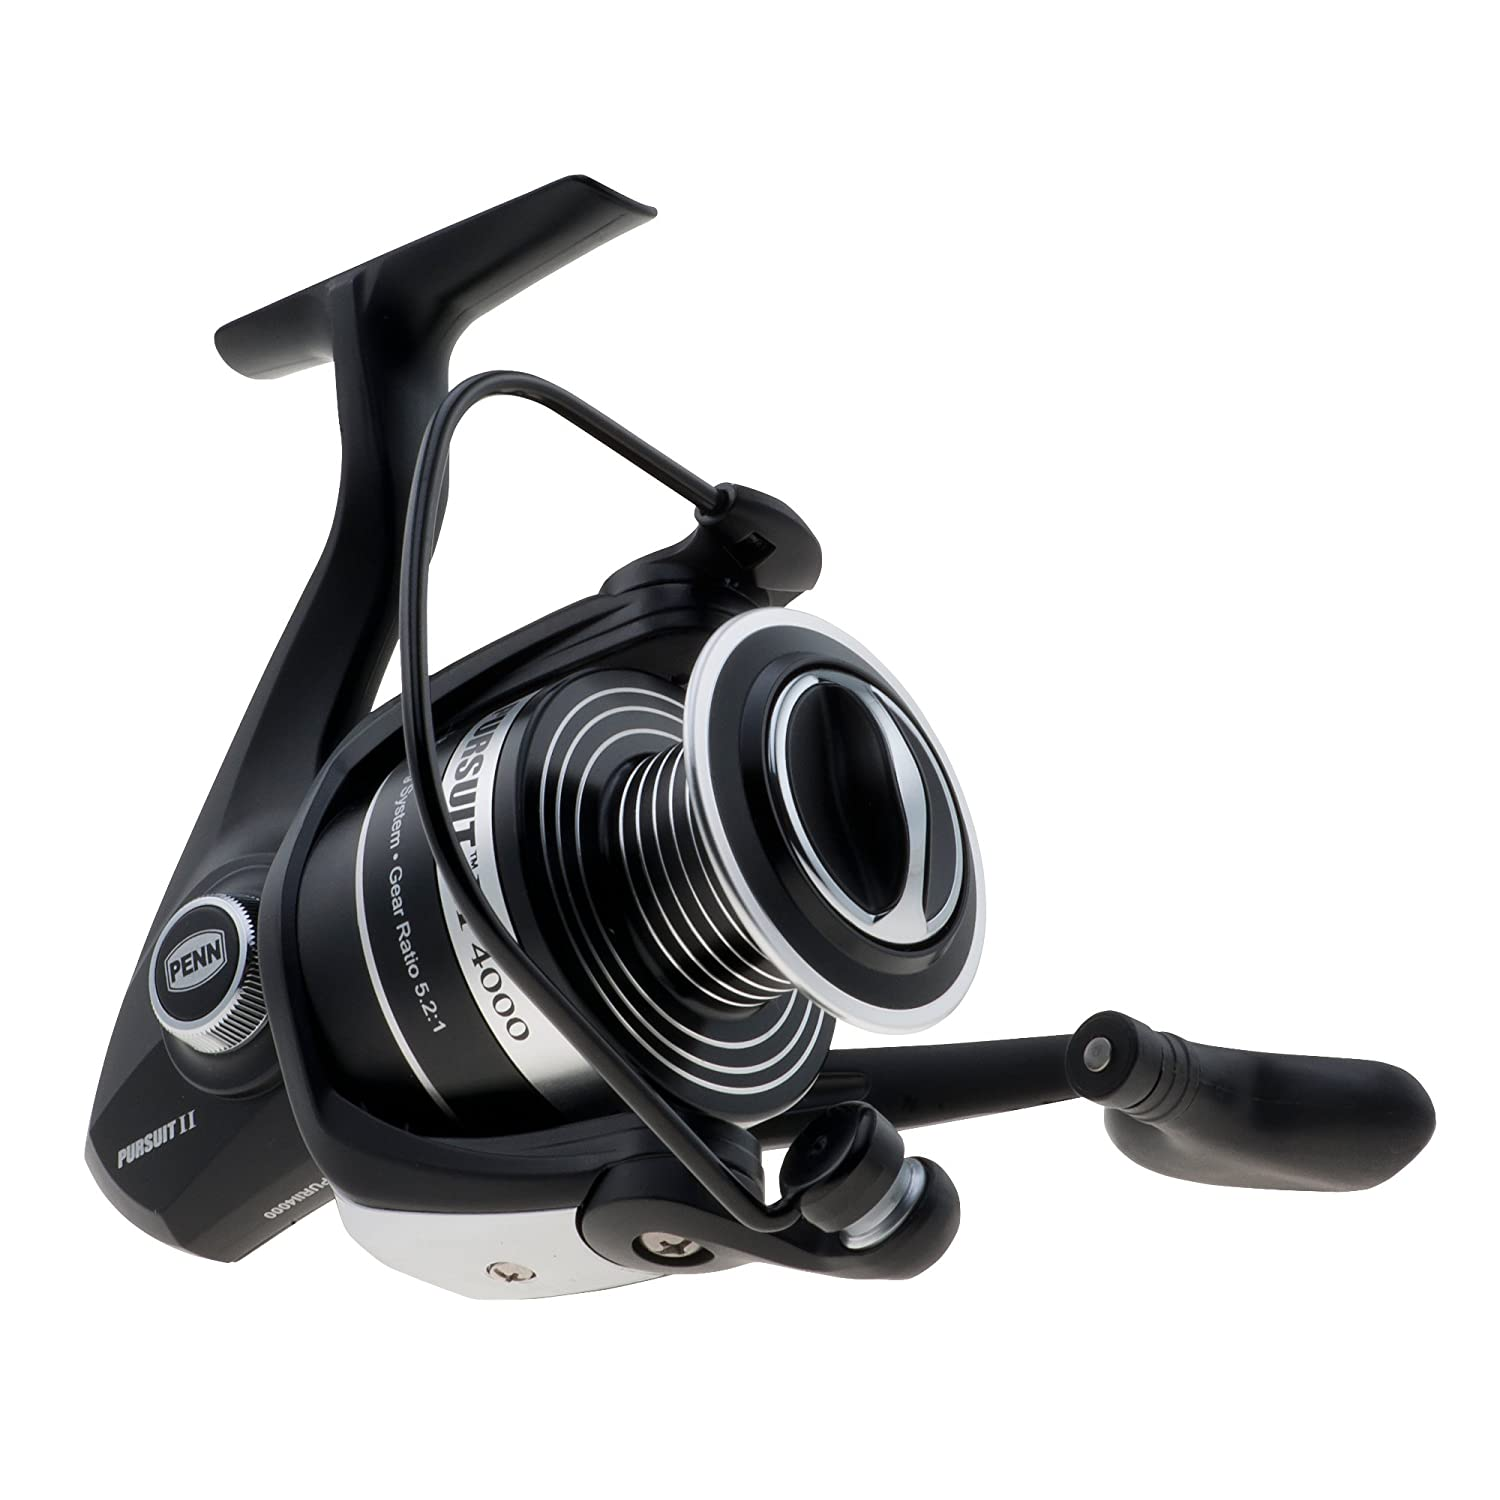 Penn Pursuit II,4000 Spinning Fishing Reel